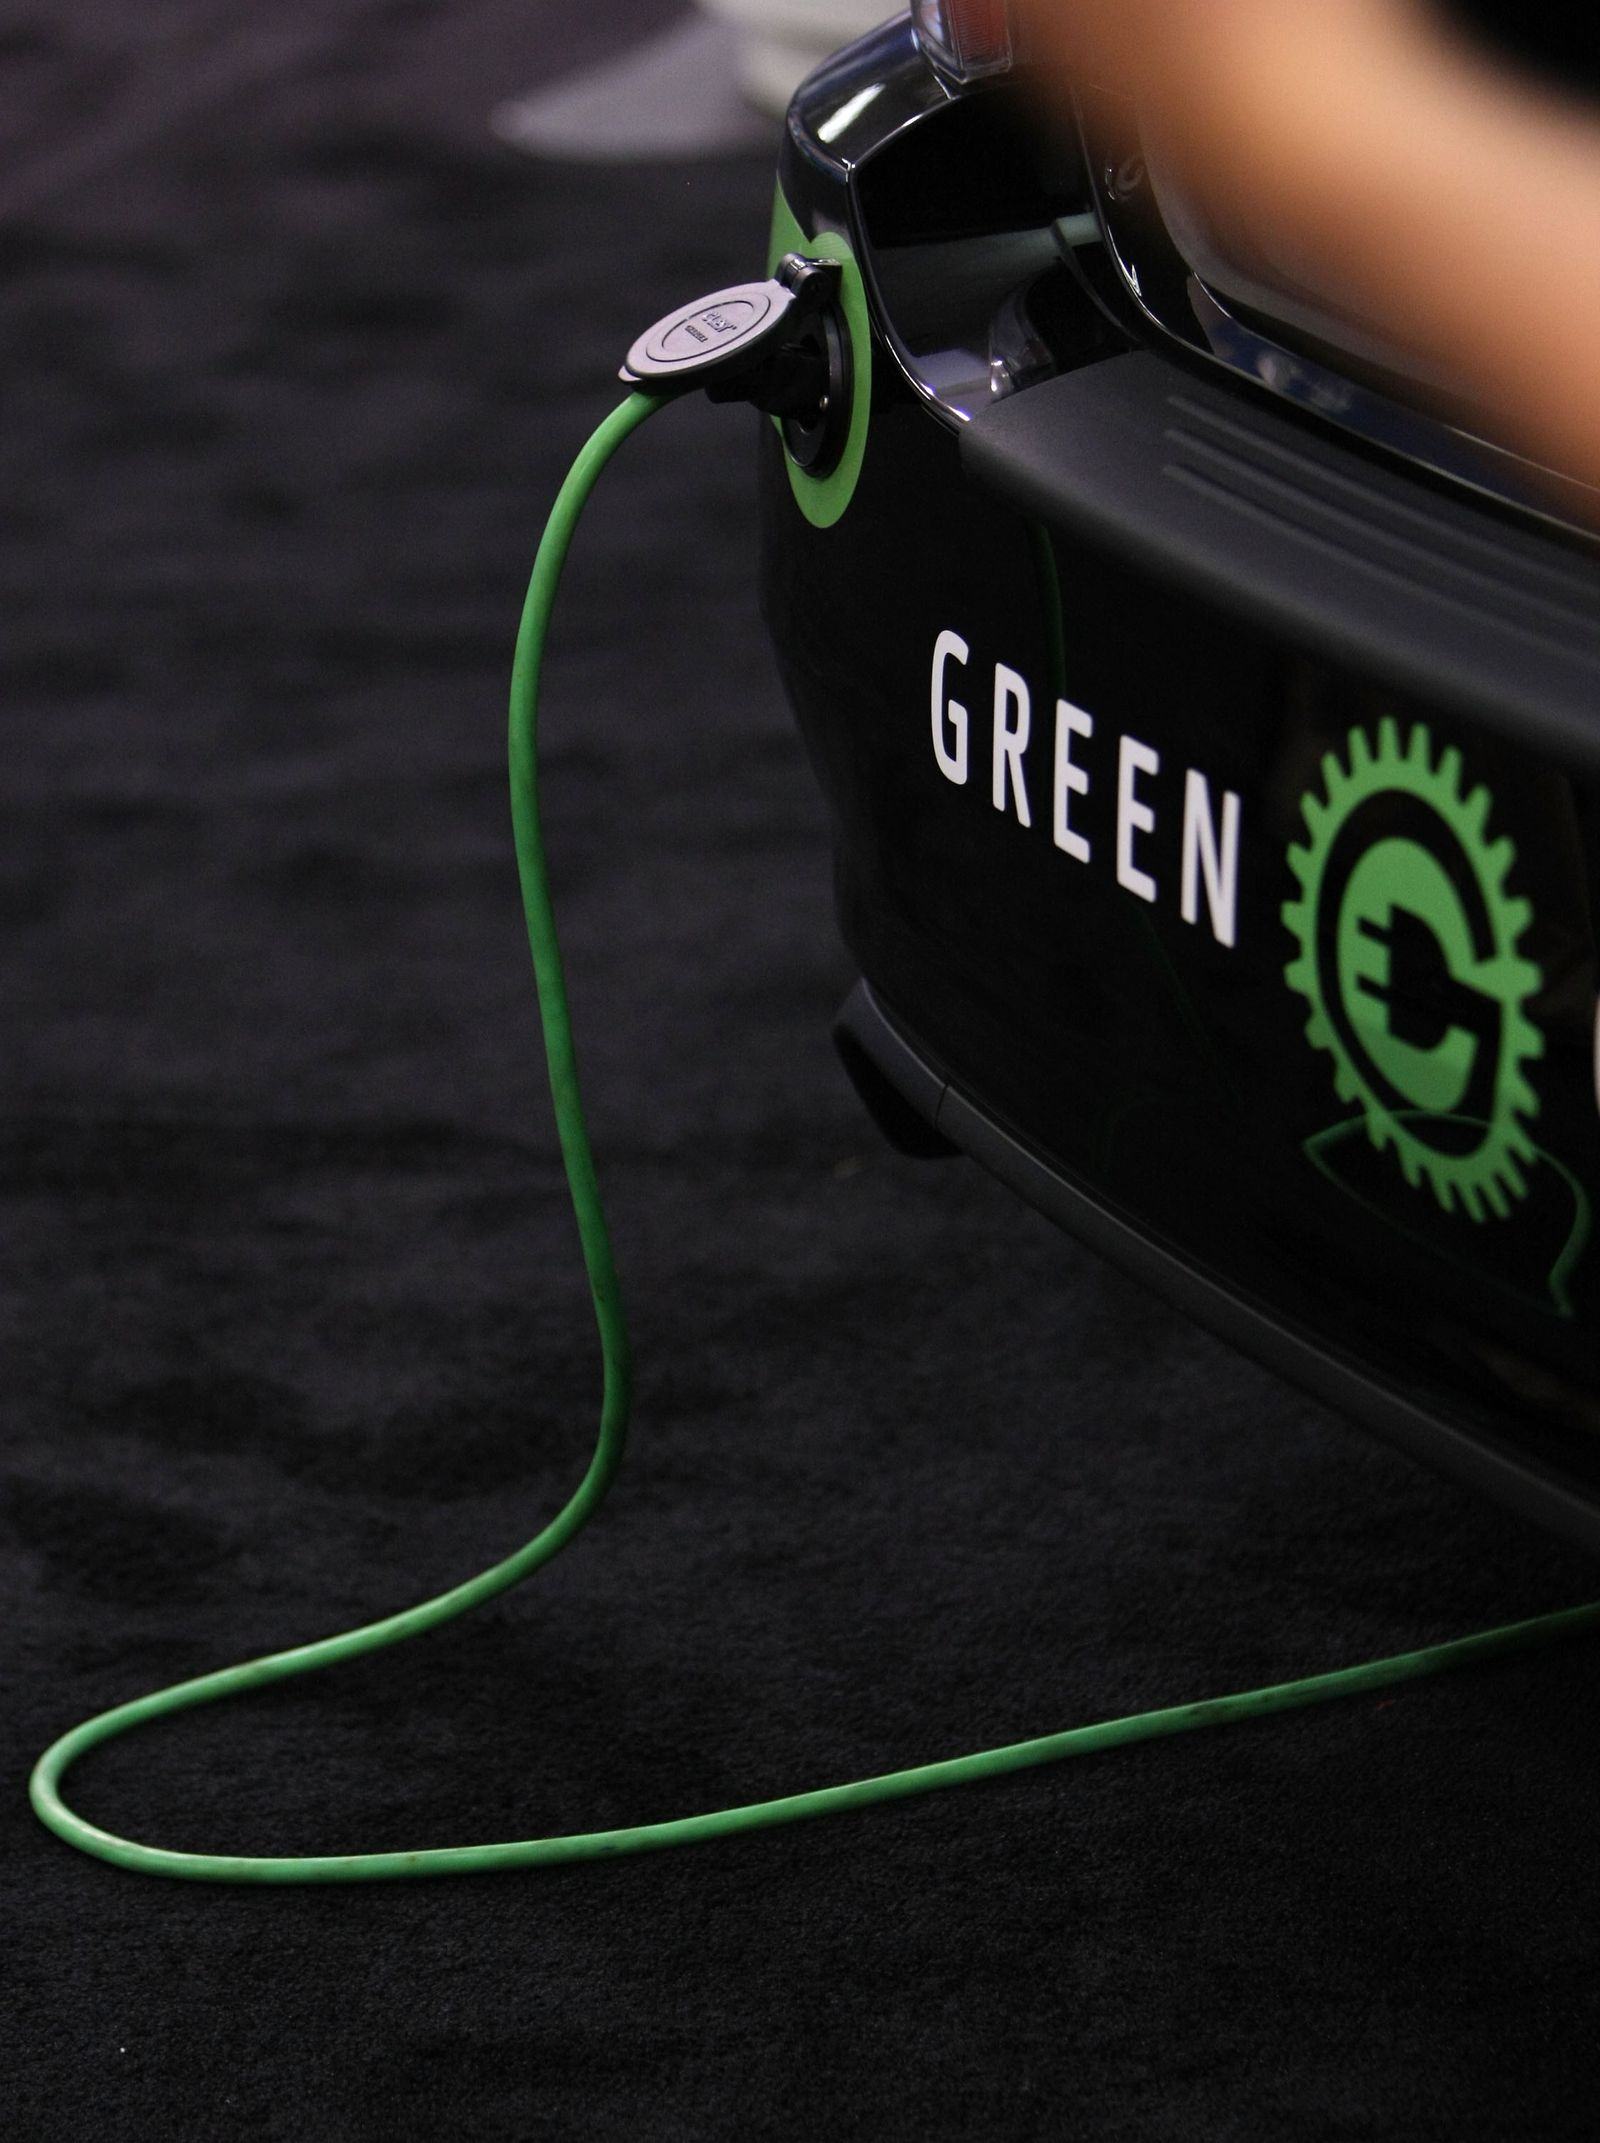 PLUG-IN 2008 CONFERENCE AND EXPO HIGHLIGHTS LATEST HYBRID ELECTRIC CAR